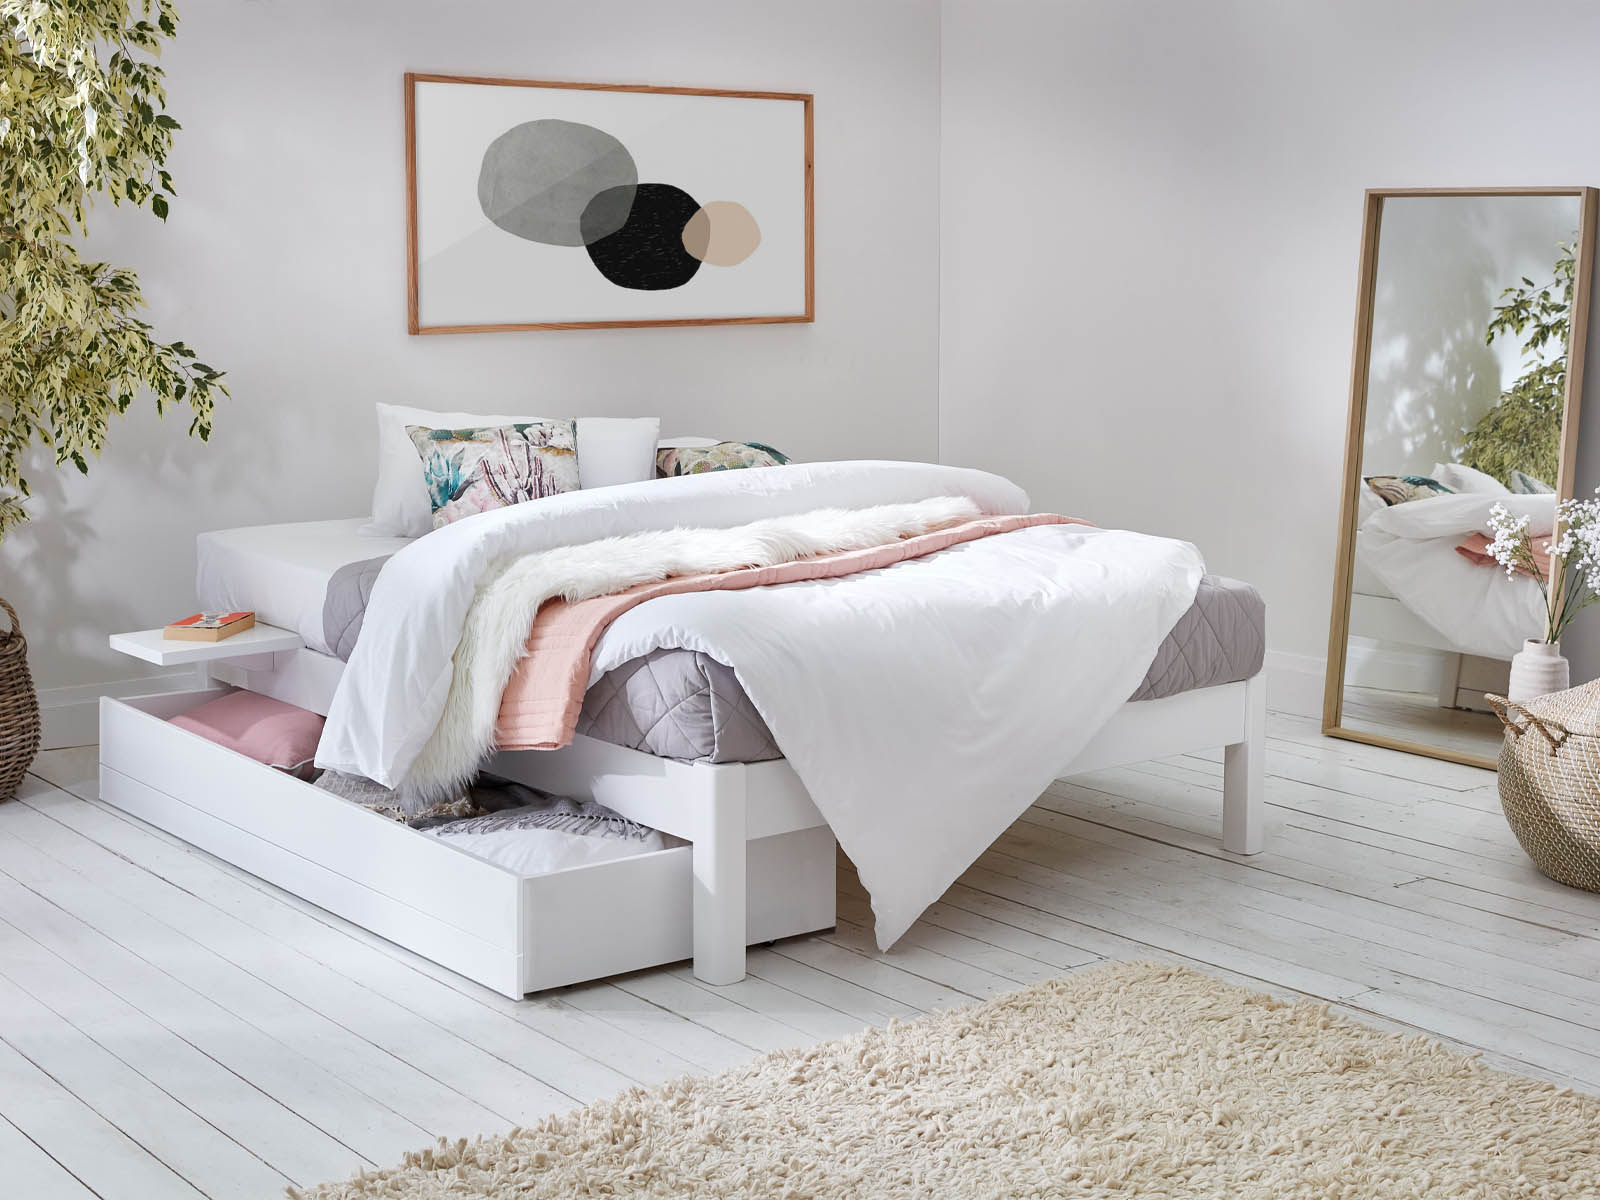 Picture of: Platform Bed Space Saver Get Laid Beds